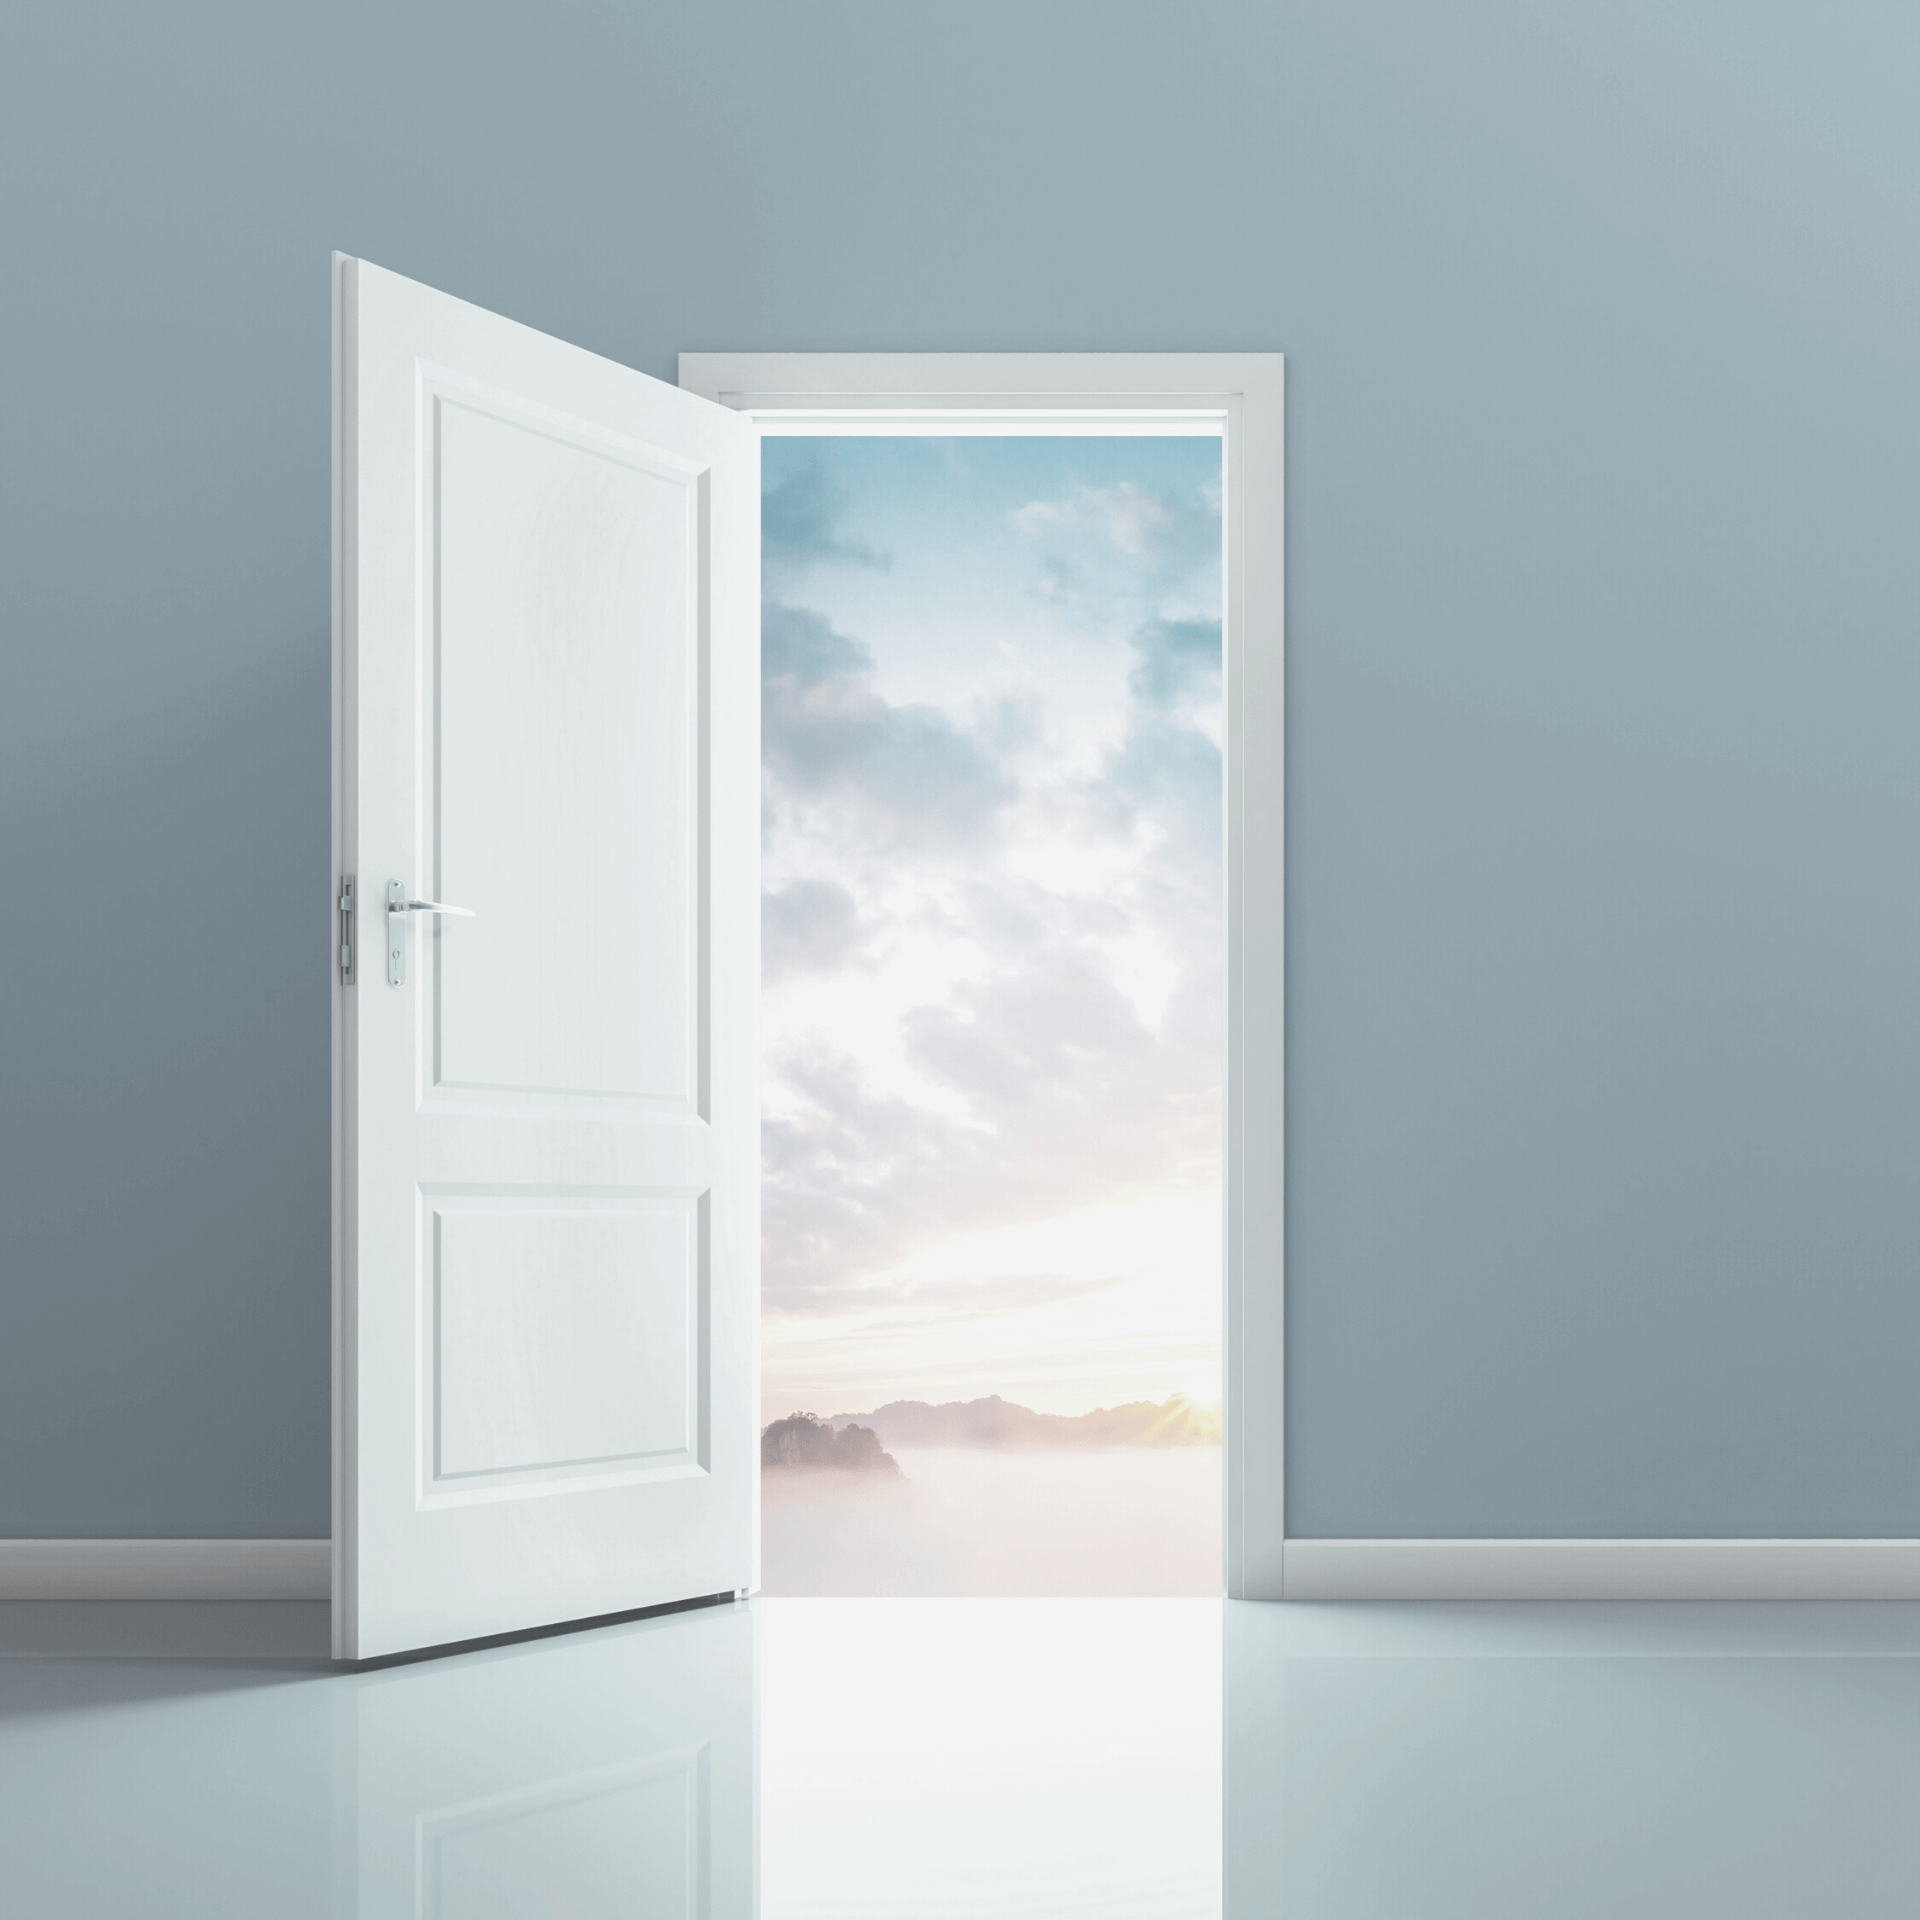 Business Branding: An open door leading into a colorful world.